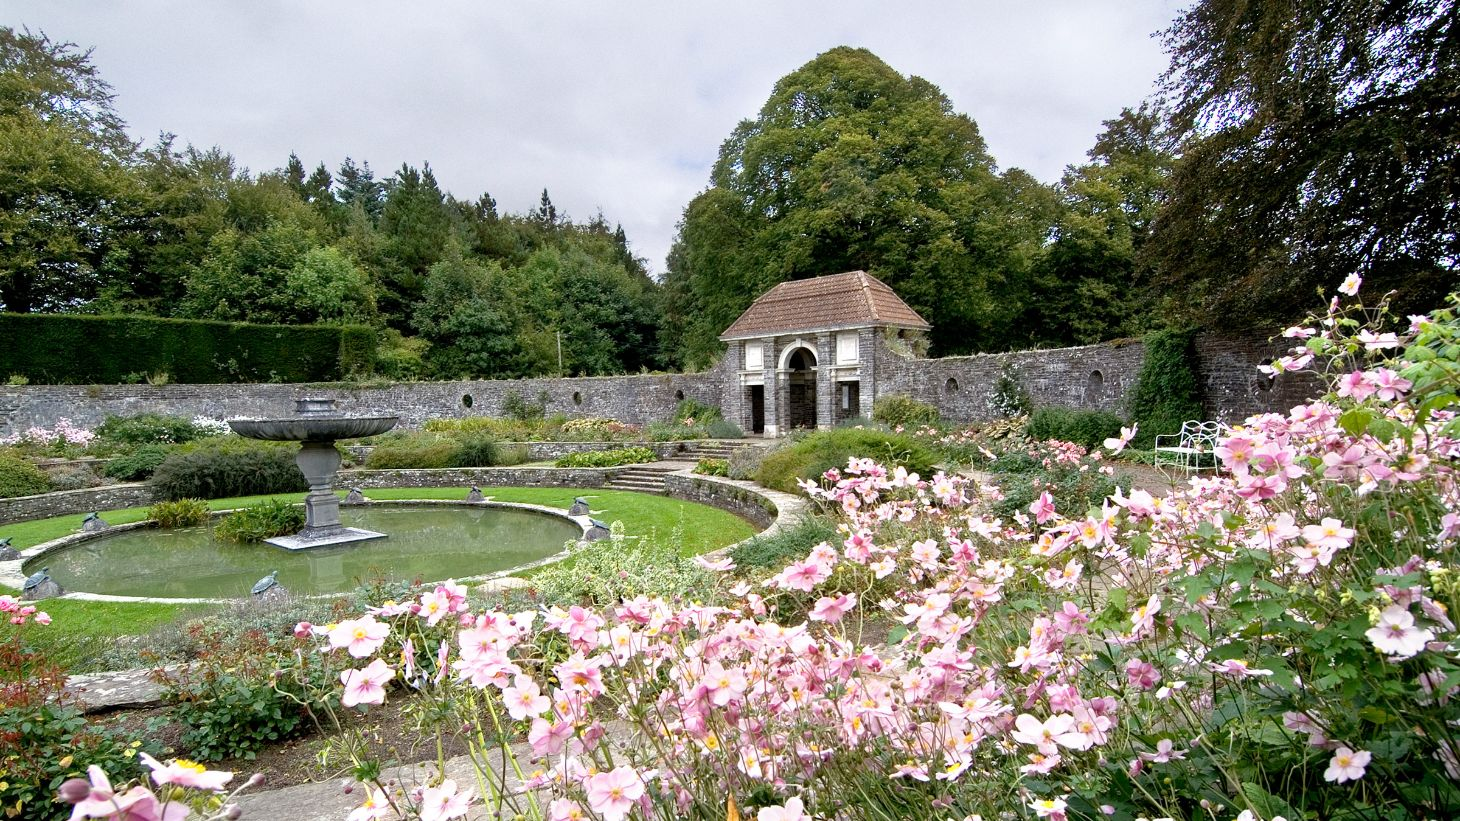 Explore the 50 acres of stunning gardens, lakes and woodland of Heywood Gardens.